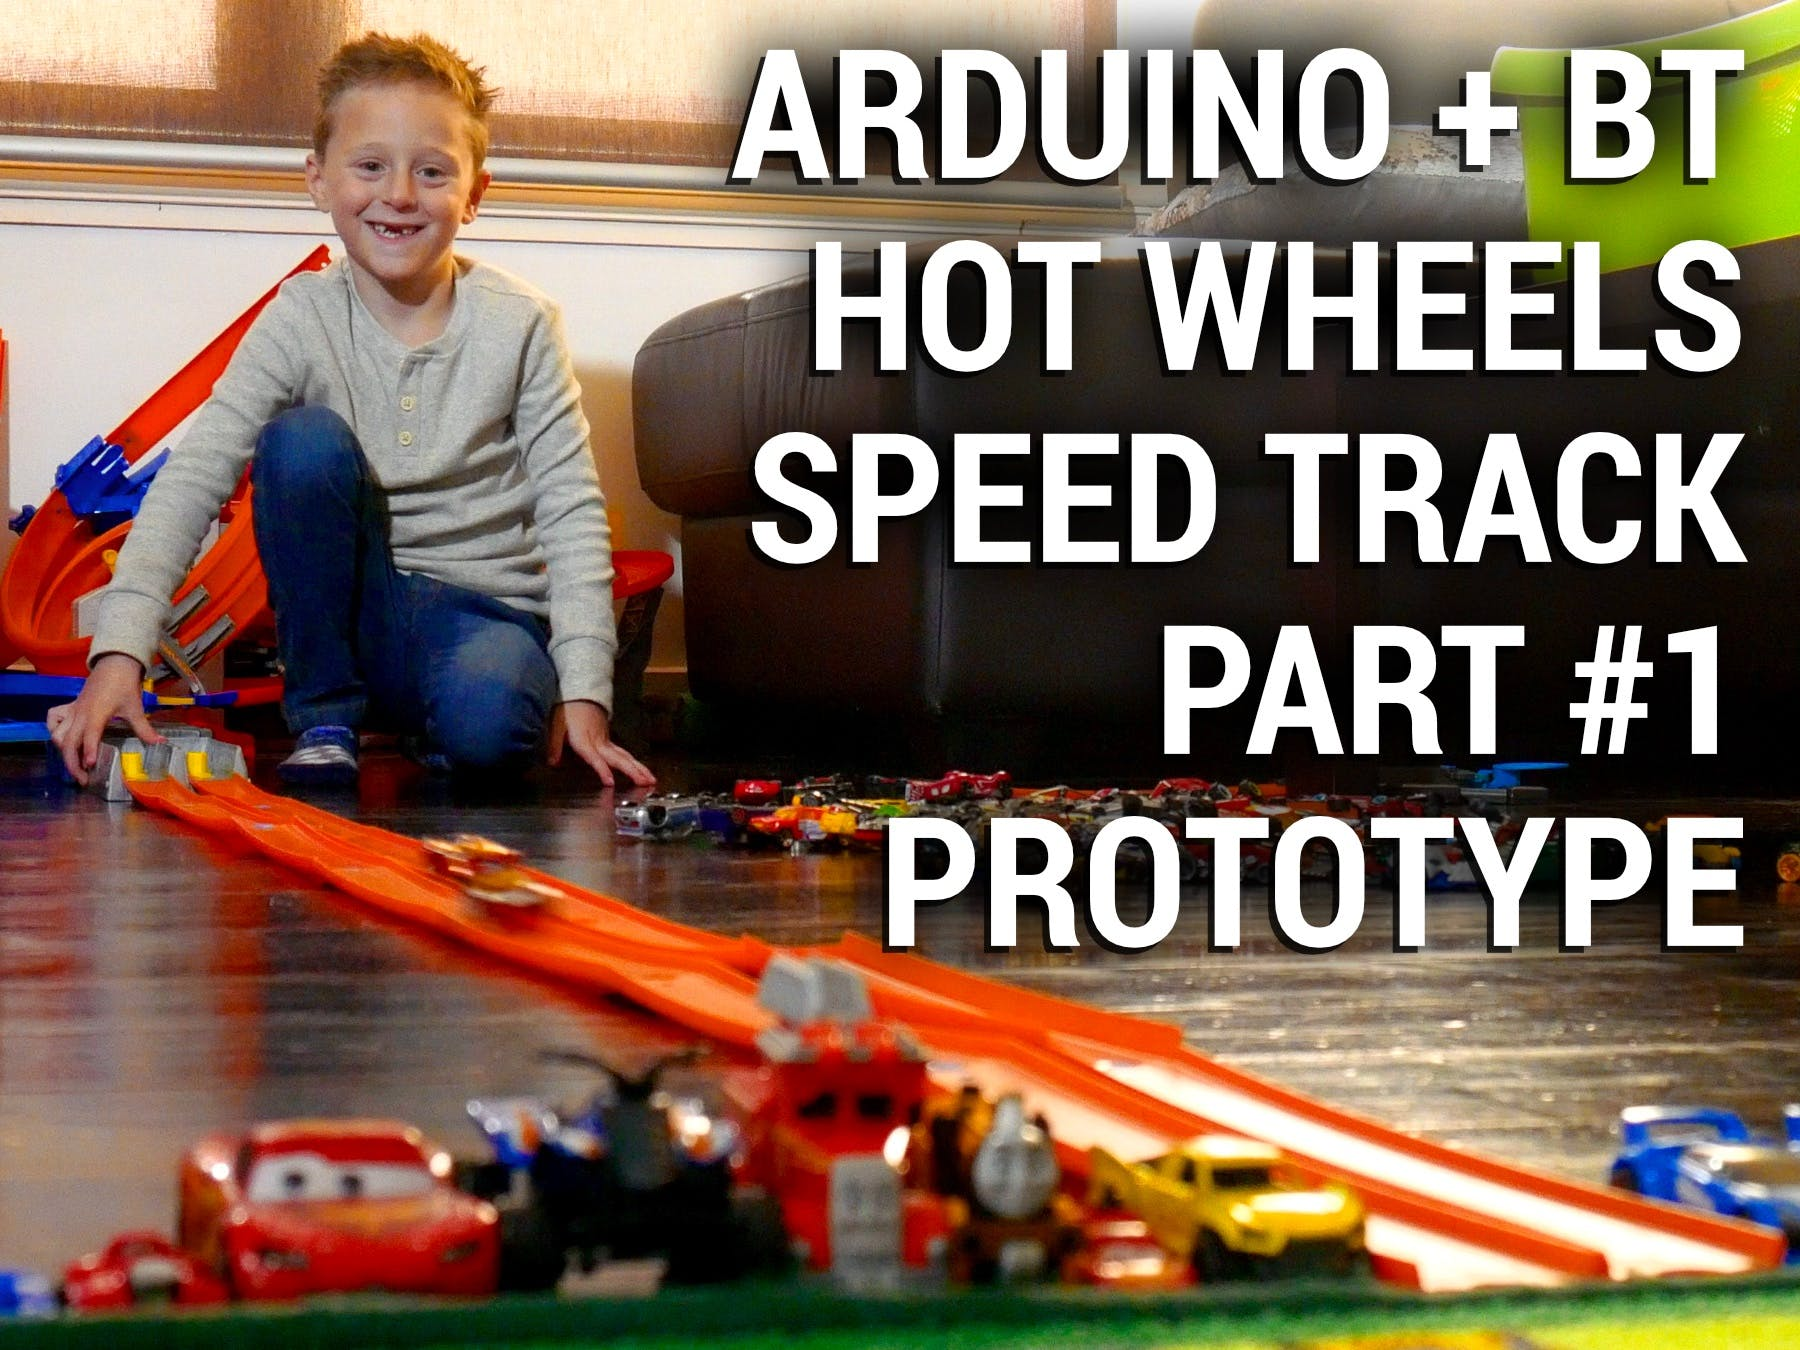 Arduino Hot Wheels Speed Track Part #1 - Prototype